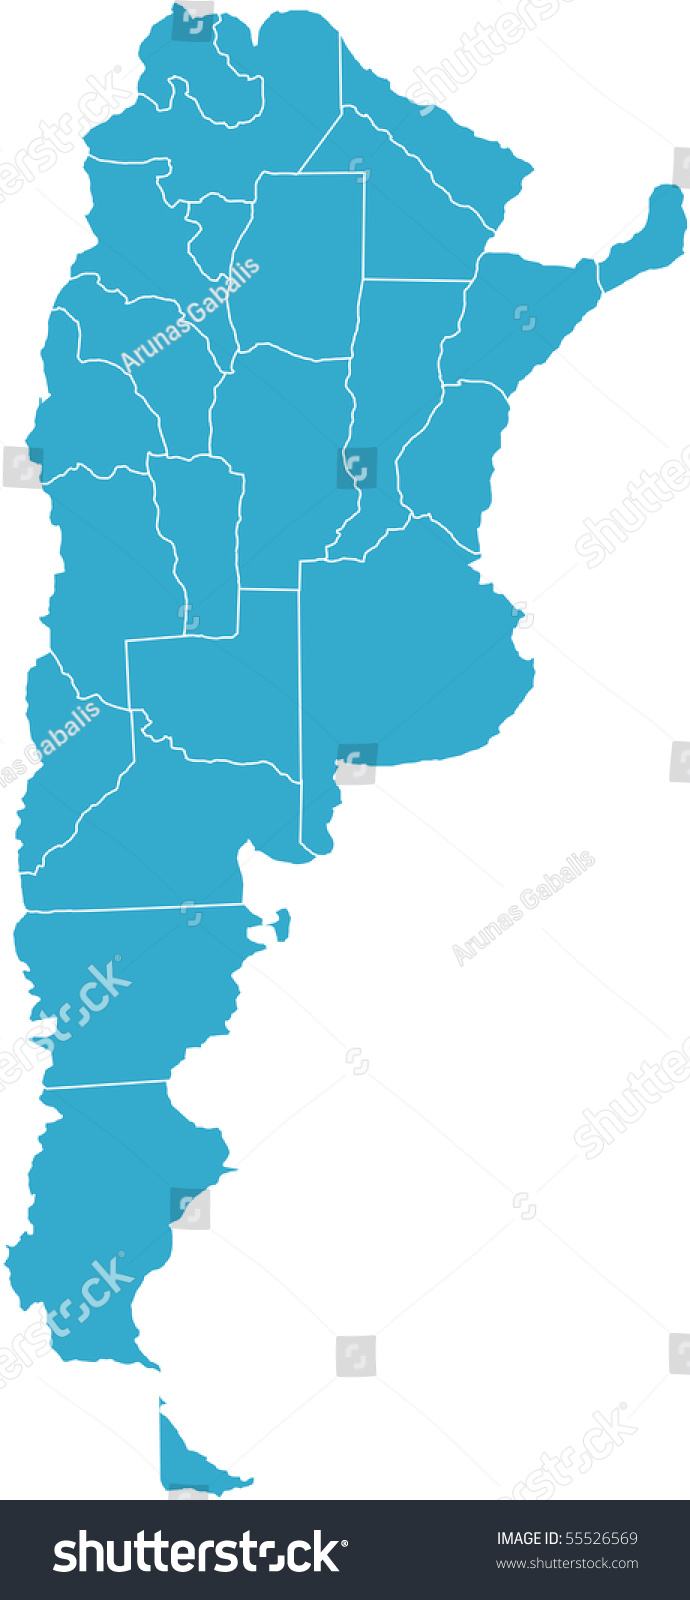 There Map Argentina Country Stock Vector Shutterstock - Argentina map of country